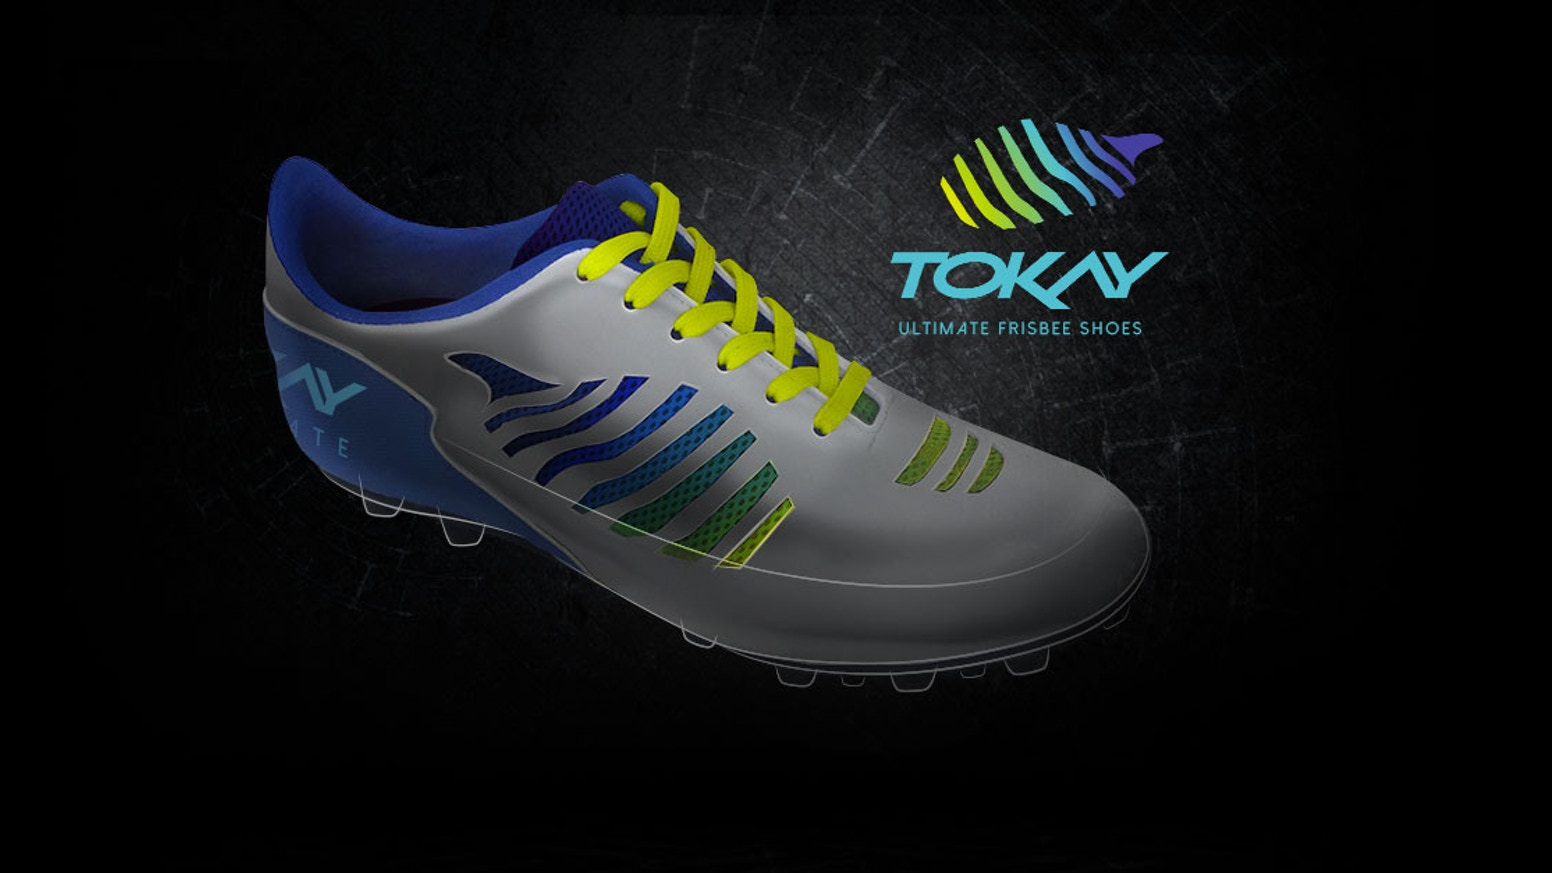 31e763a8854 TOKAY Ultimate frisbee shoes by Robin Lamy — Kickstarter